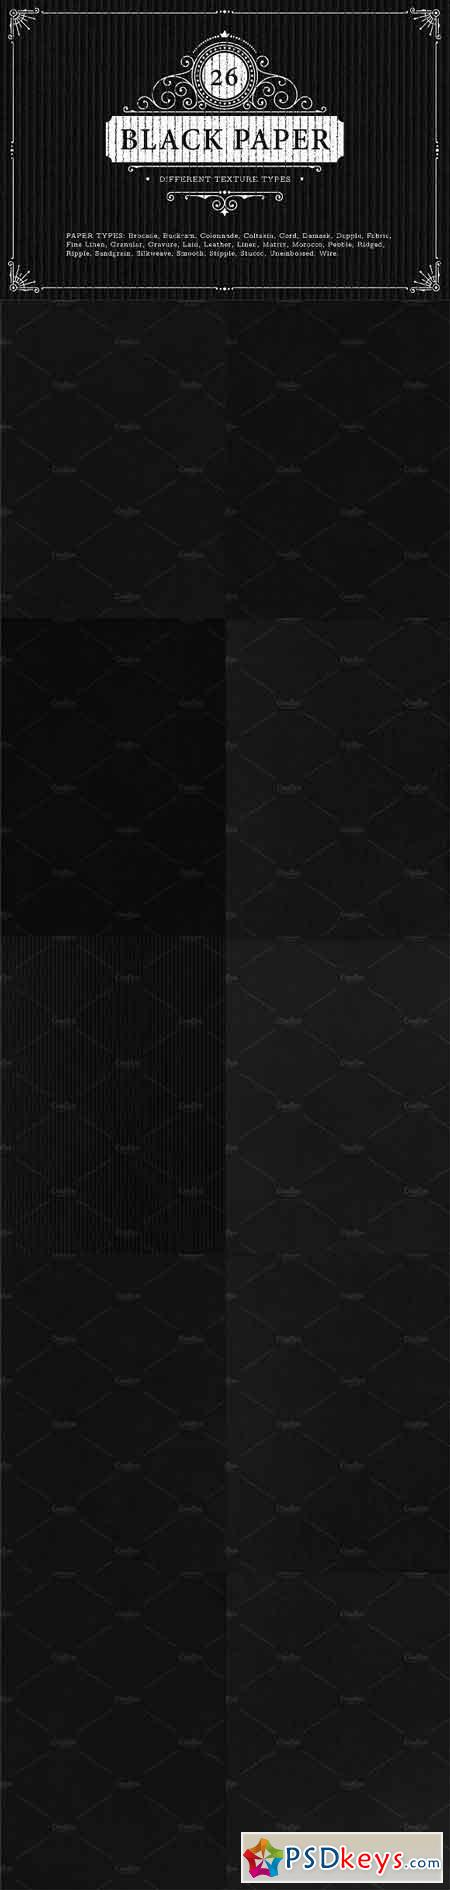 26 Black Paper Texture Backgrounds 964196